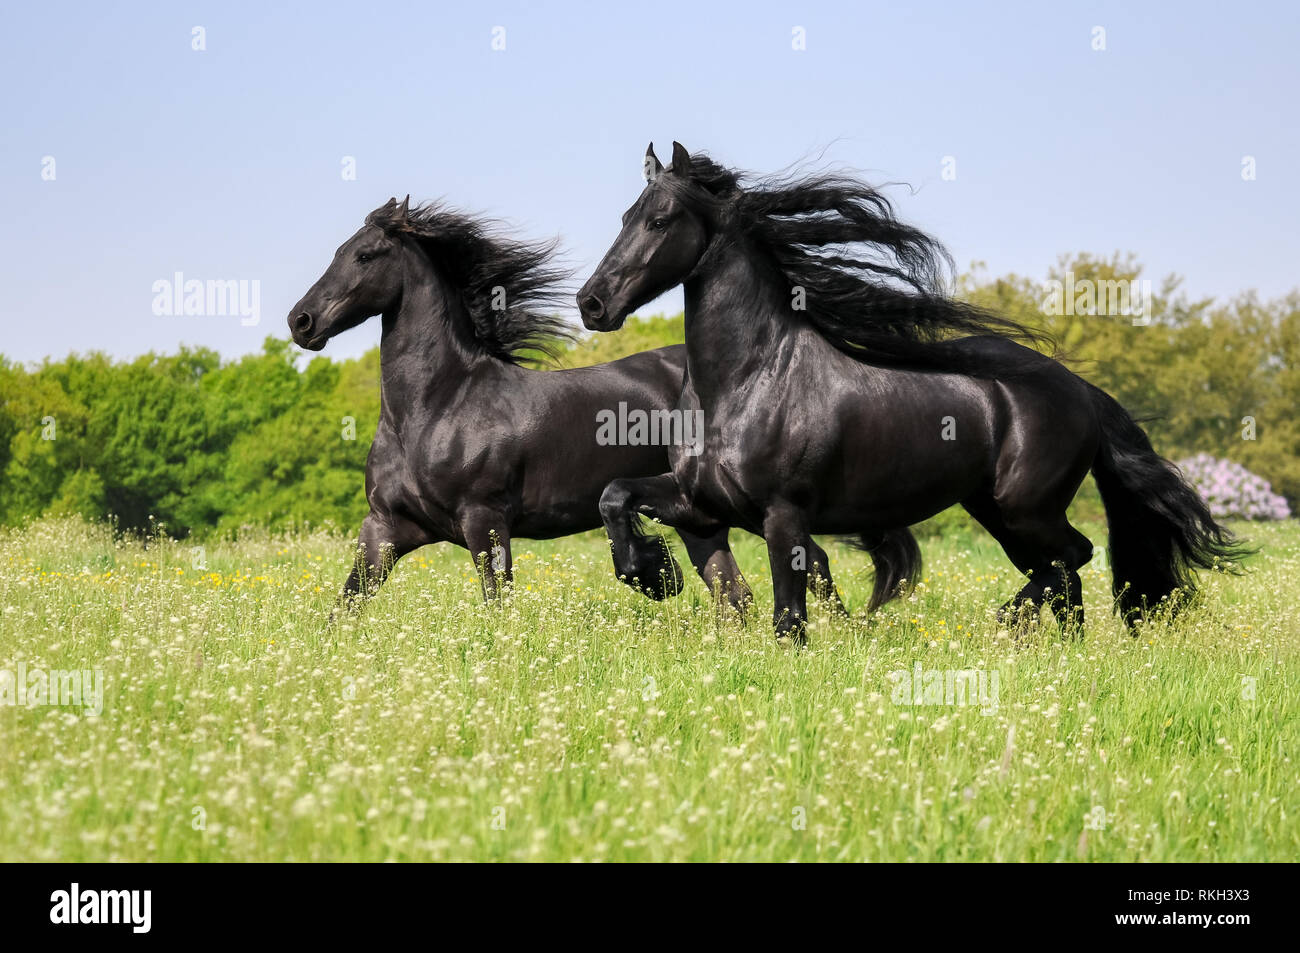 Two Friesian horses, black coat colored, running powerfully with waving manes in a flowering green grass meadow in spring, Germany - Stock Image